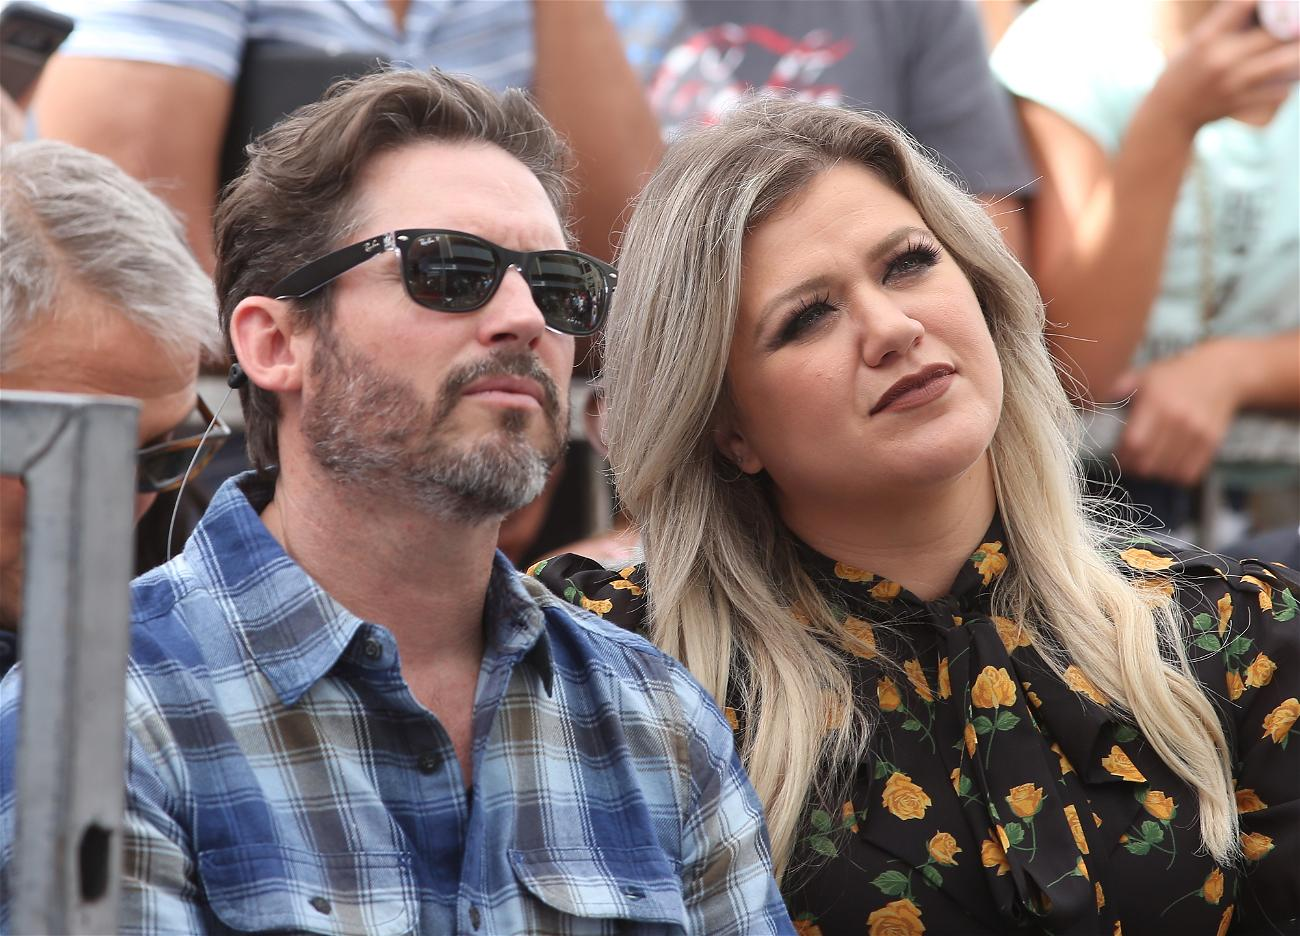 Kelly Clarkson Ordered To Pay Ex-Husband $200,000 A Month In Support